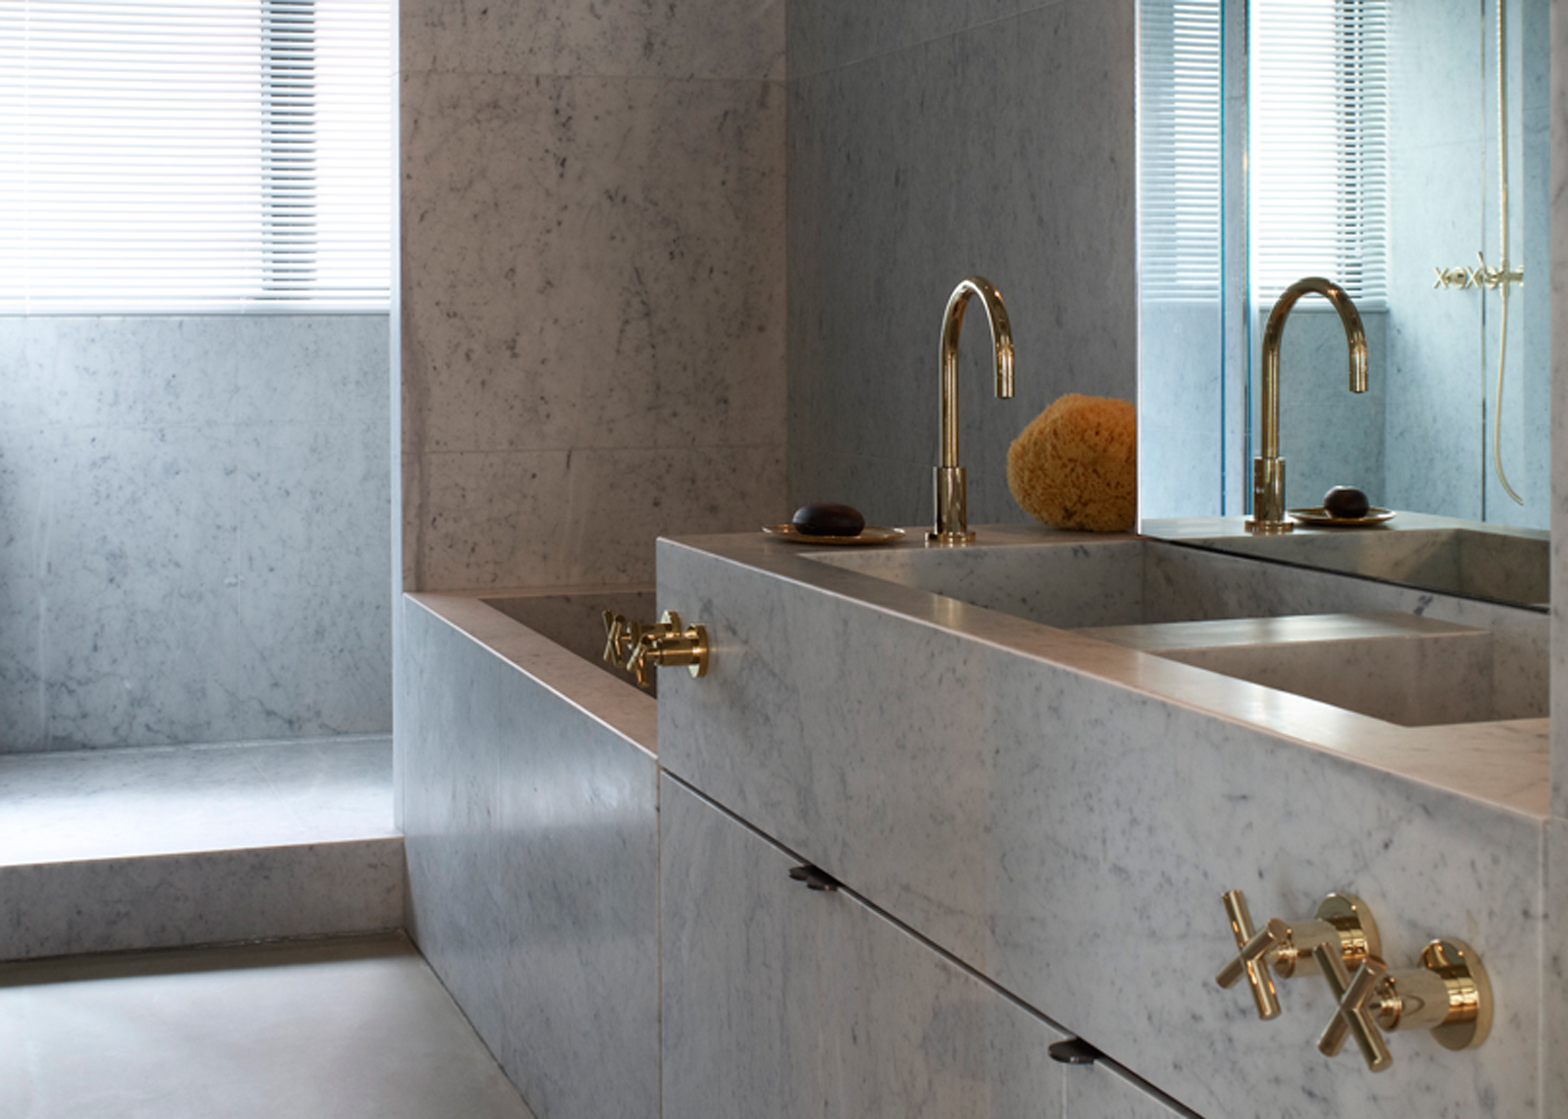 TwoTwoSix Hollywood Road by Studioilse is one of the 10 most popular marble interiors on Pinterest